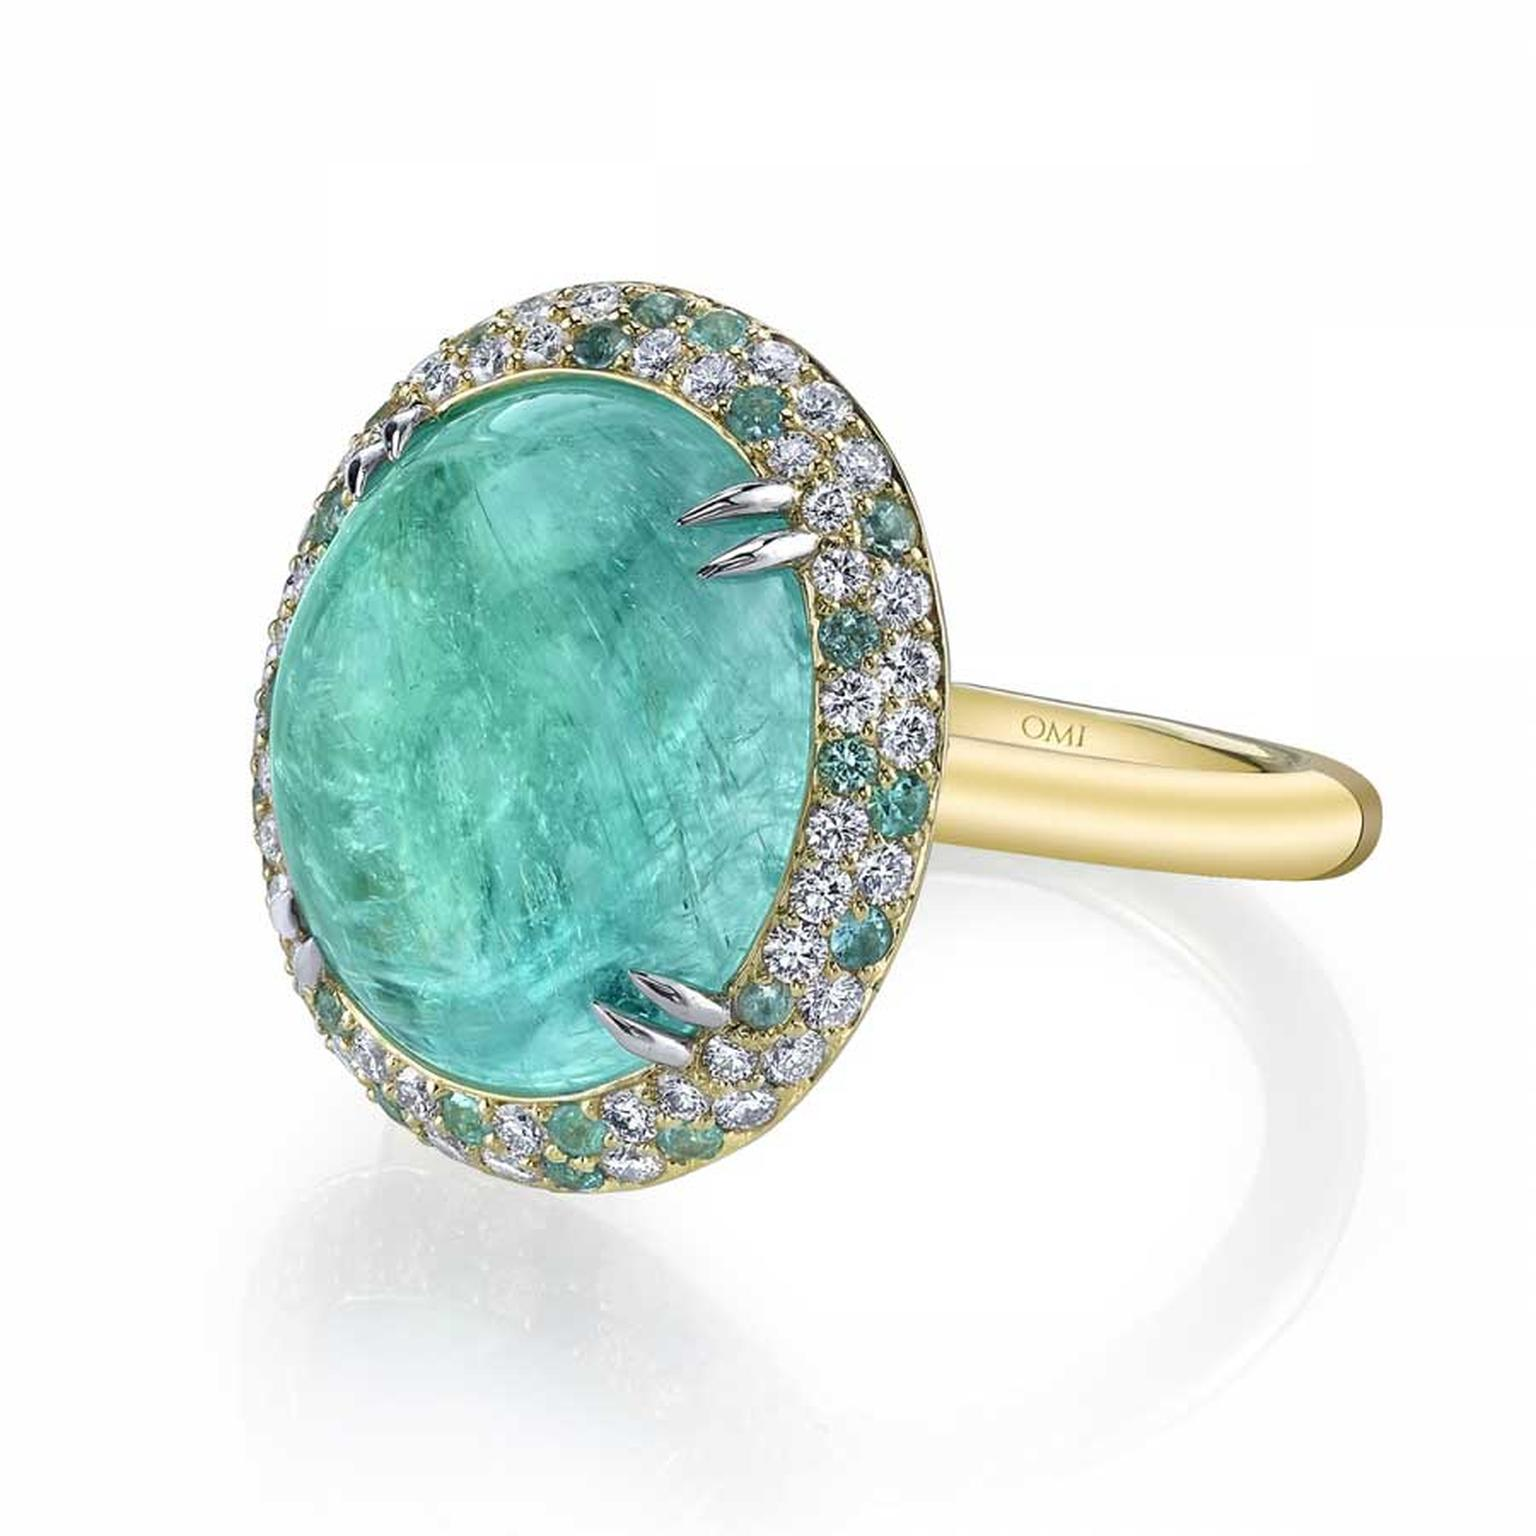 Omi Privé cuprian elbaite and Paraiba tourmaline ring